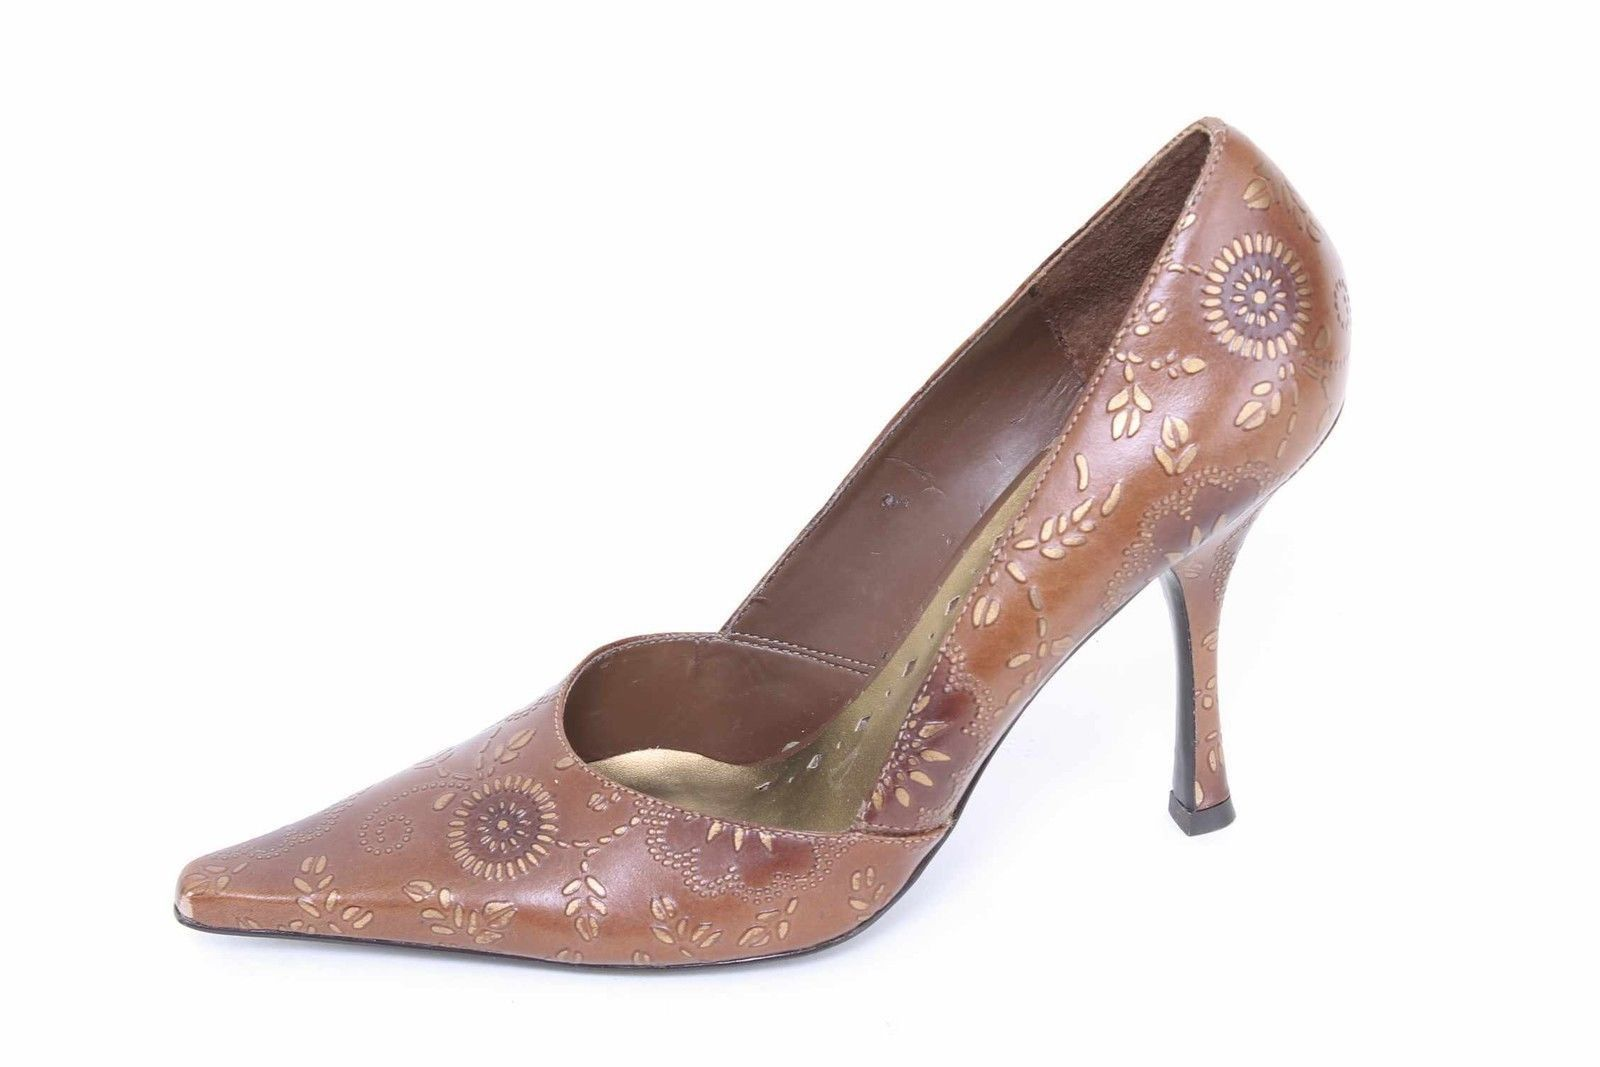 BCBGIRLS Brown Chic Embossed Floral Print Leather Pumps Size 8.5B Ref-170-S